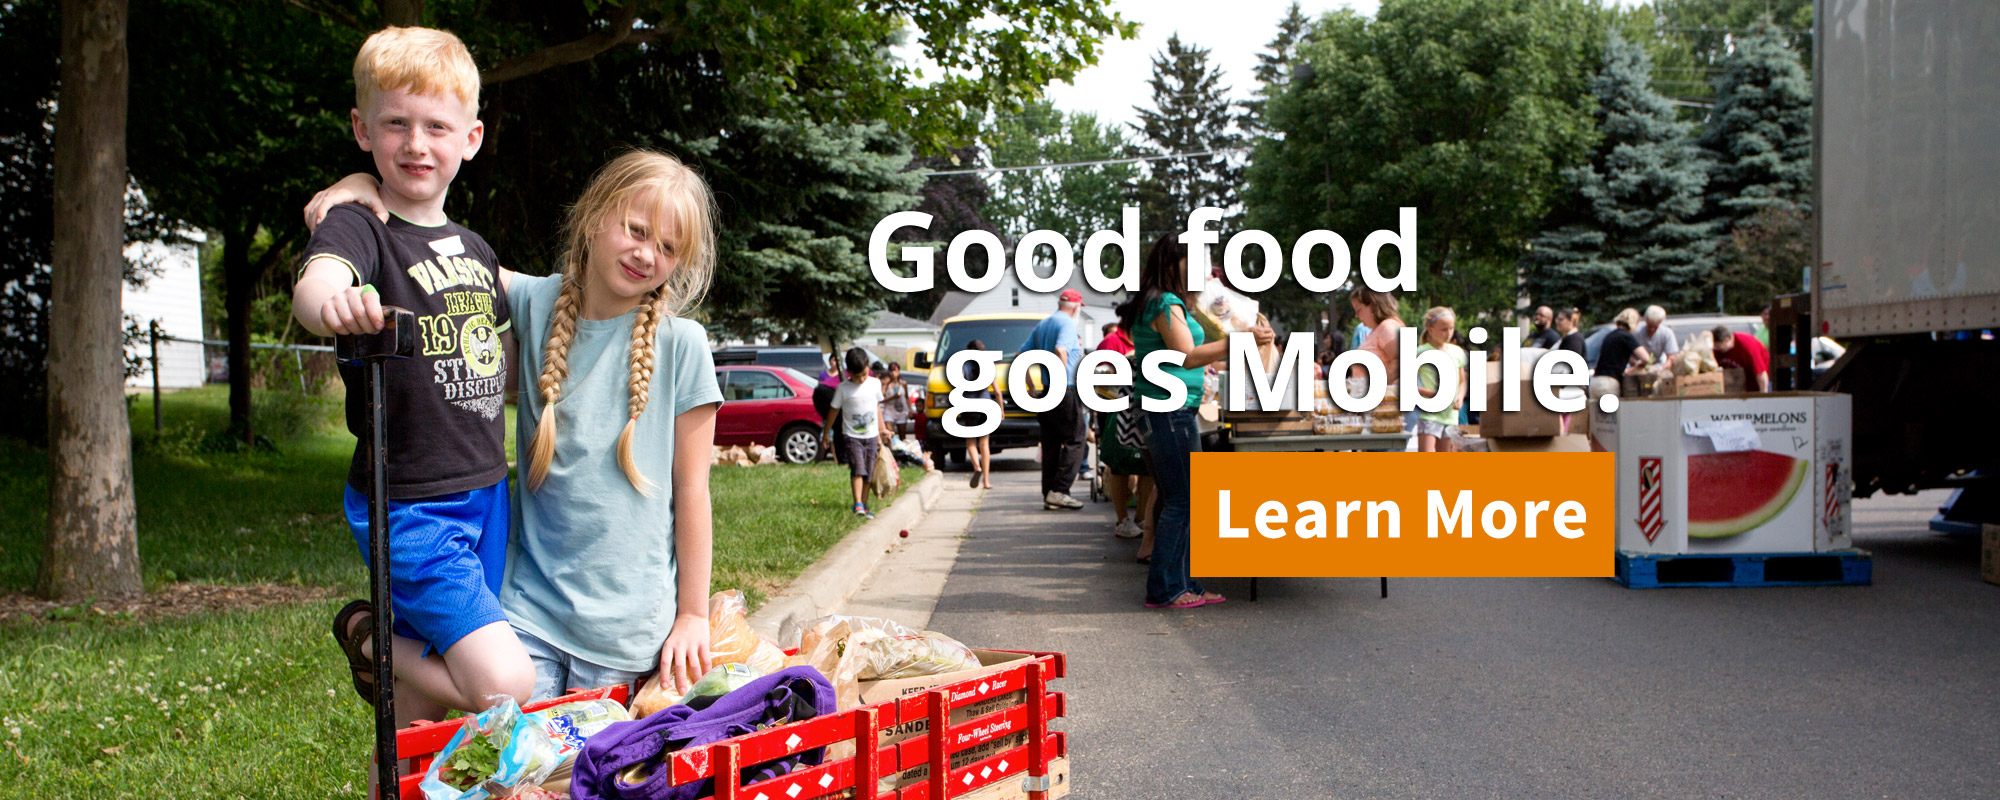 Good food goes Mobile - Learn More